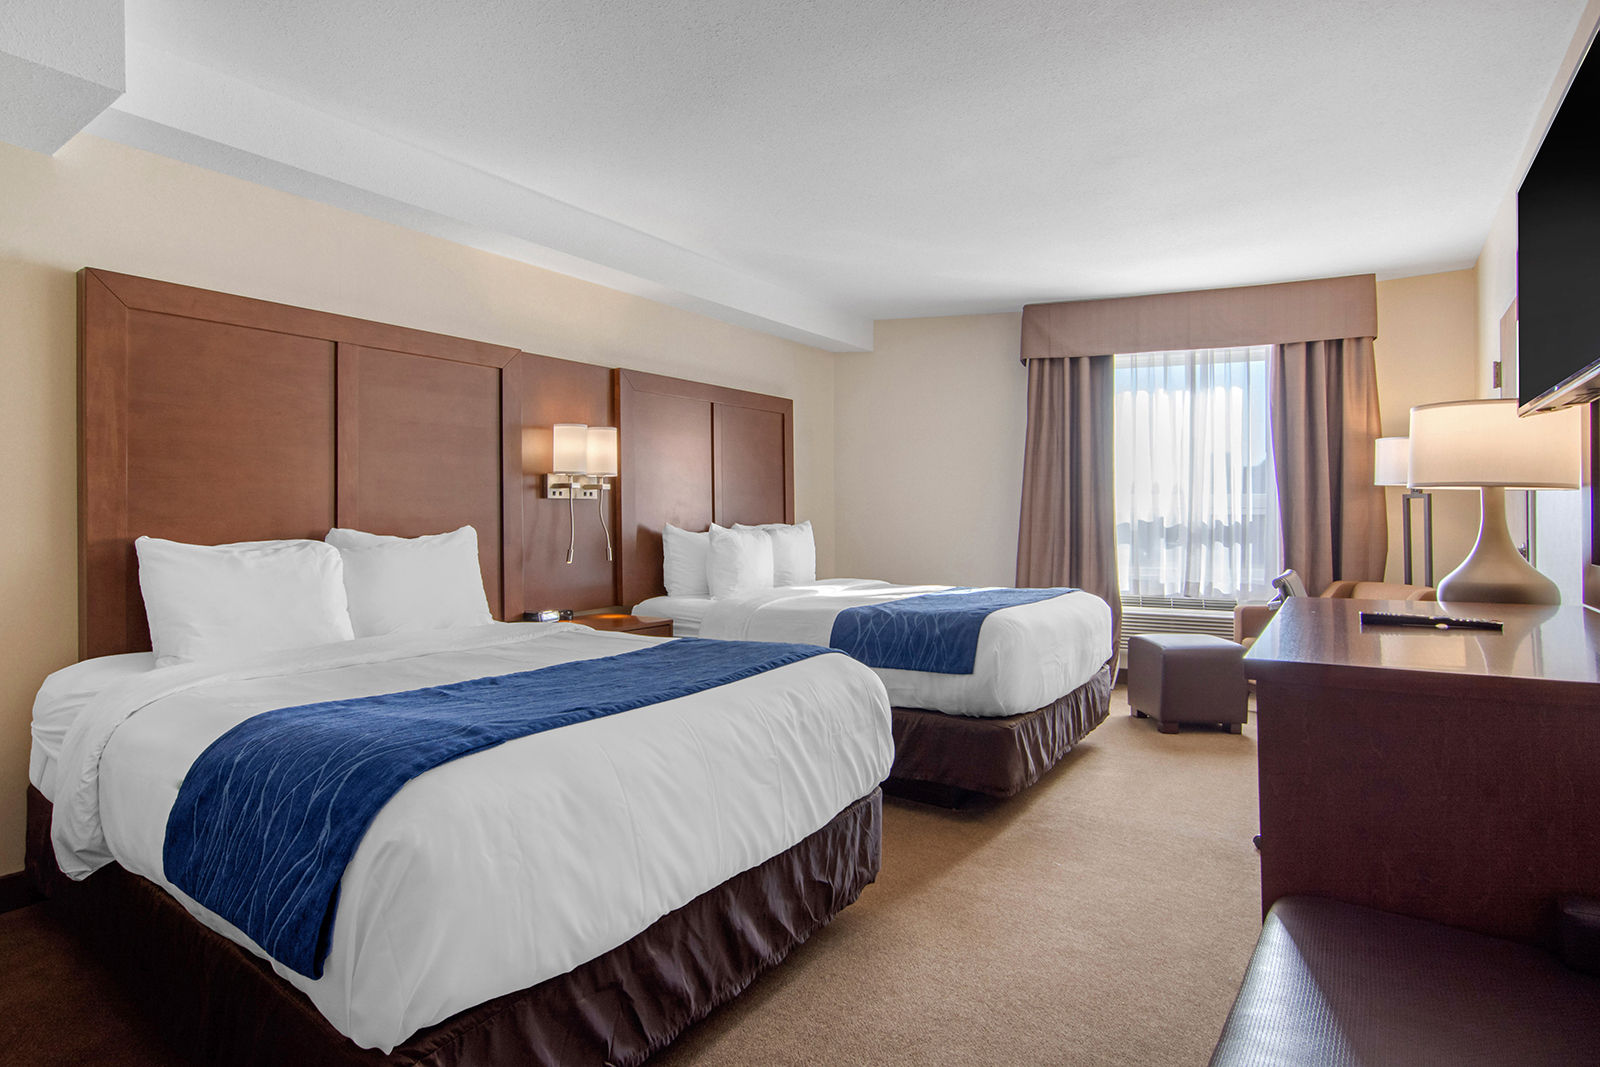 Rooms have been outfitted with modern and bright furnishings, including new beds and bedding, as well as amenities such as 50-inch TVs.